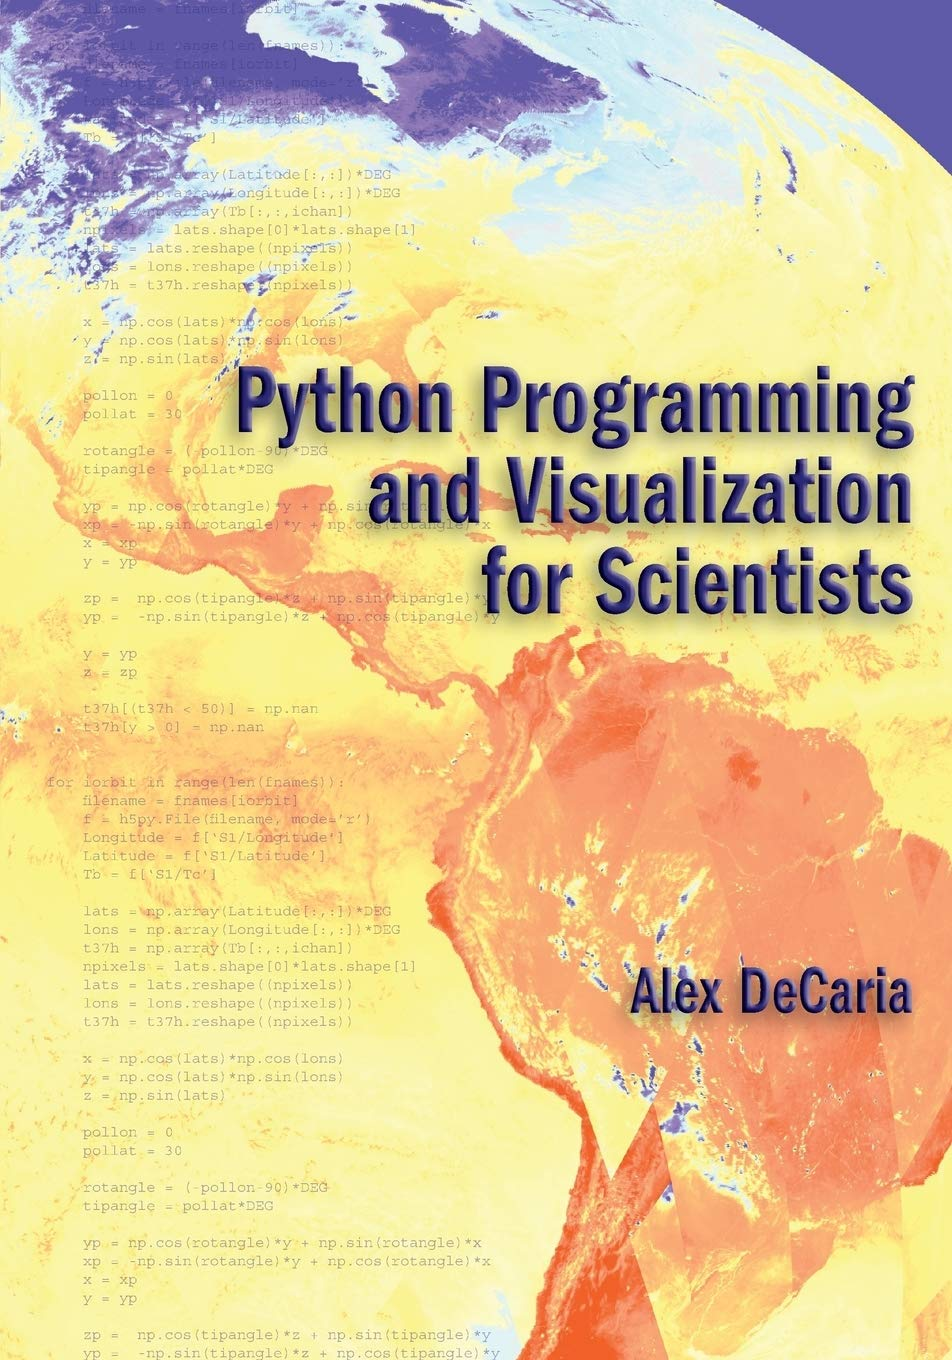 Python Programming and Visualization for Scientists